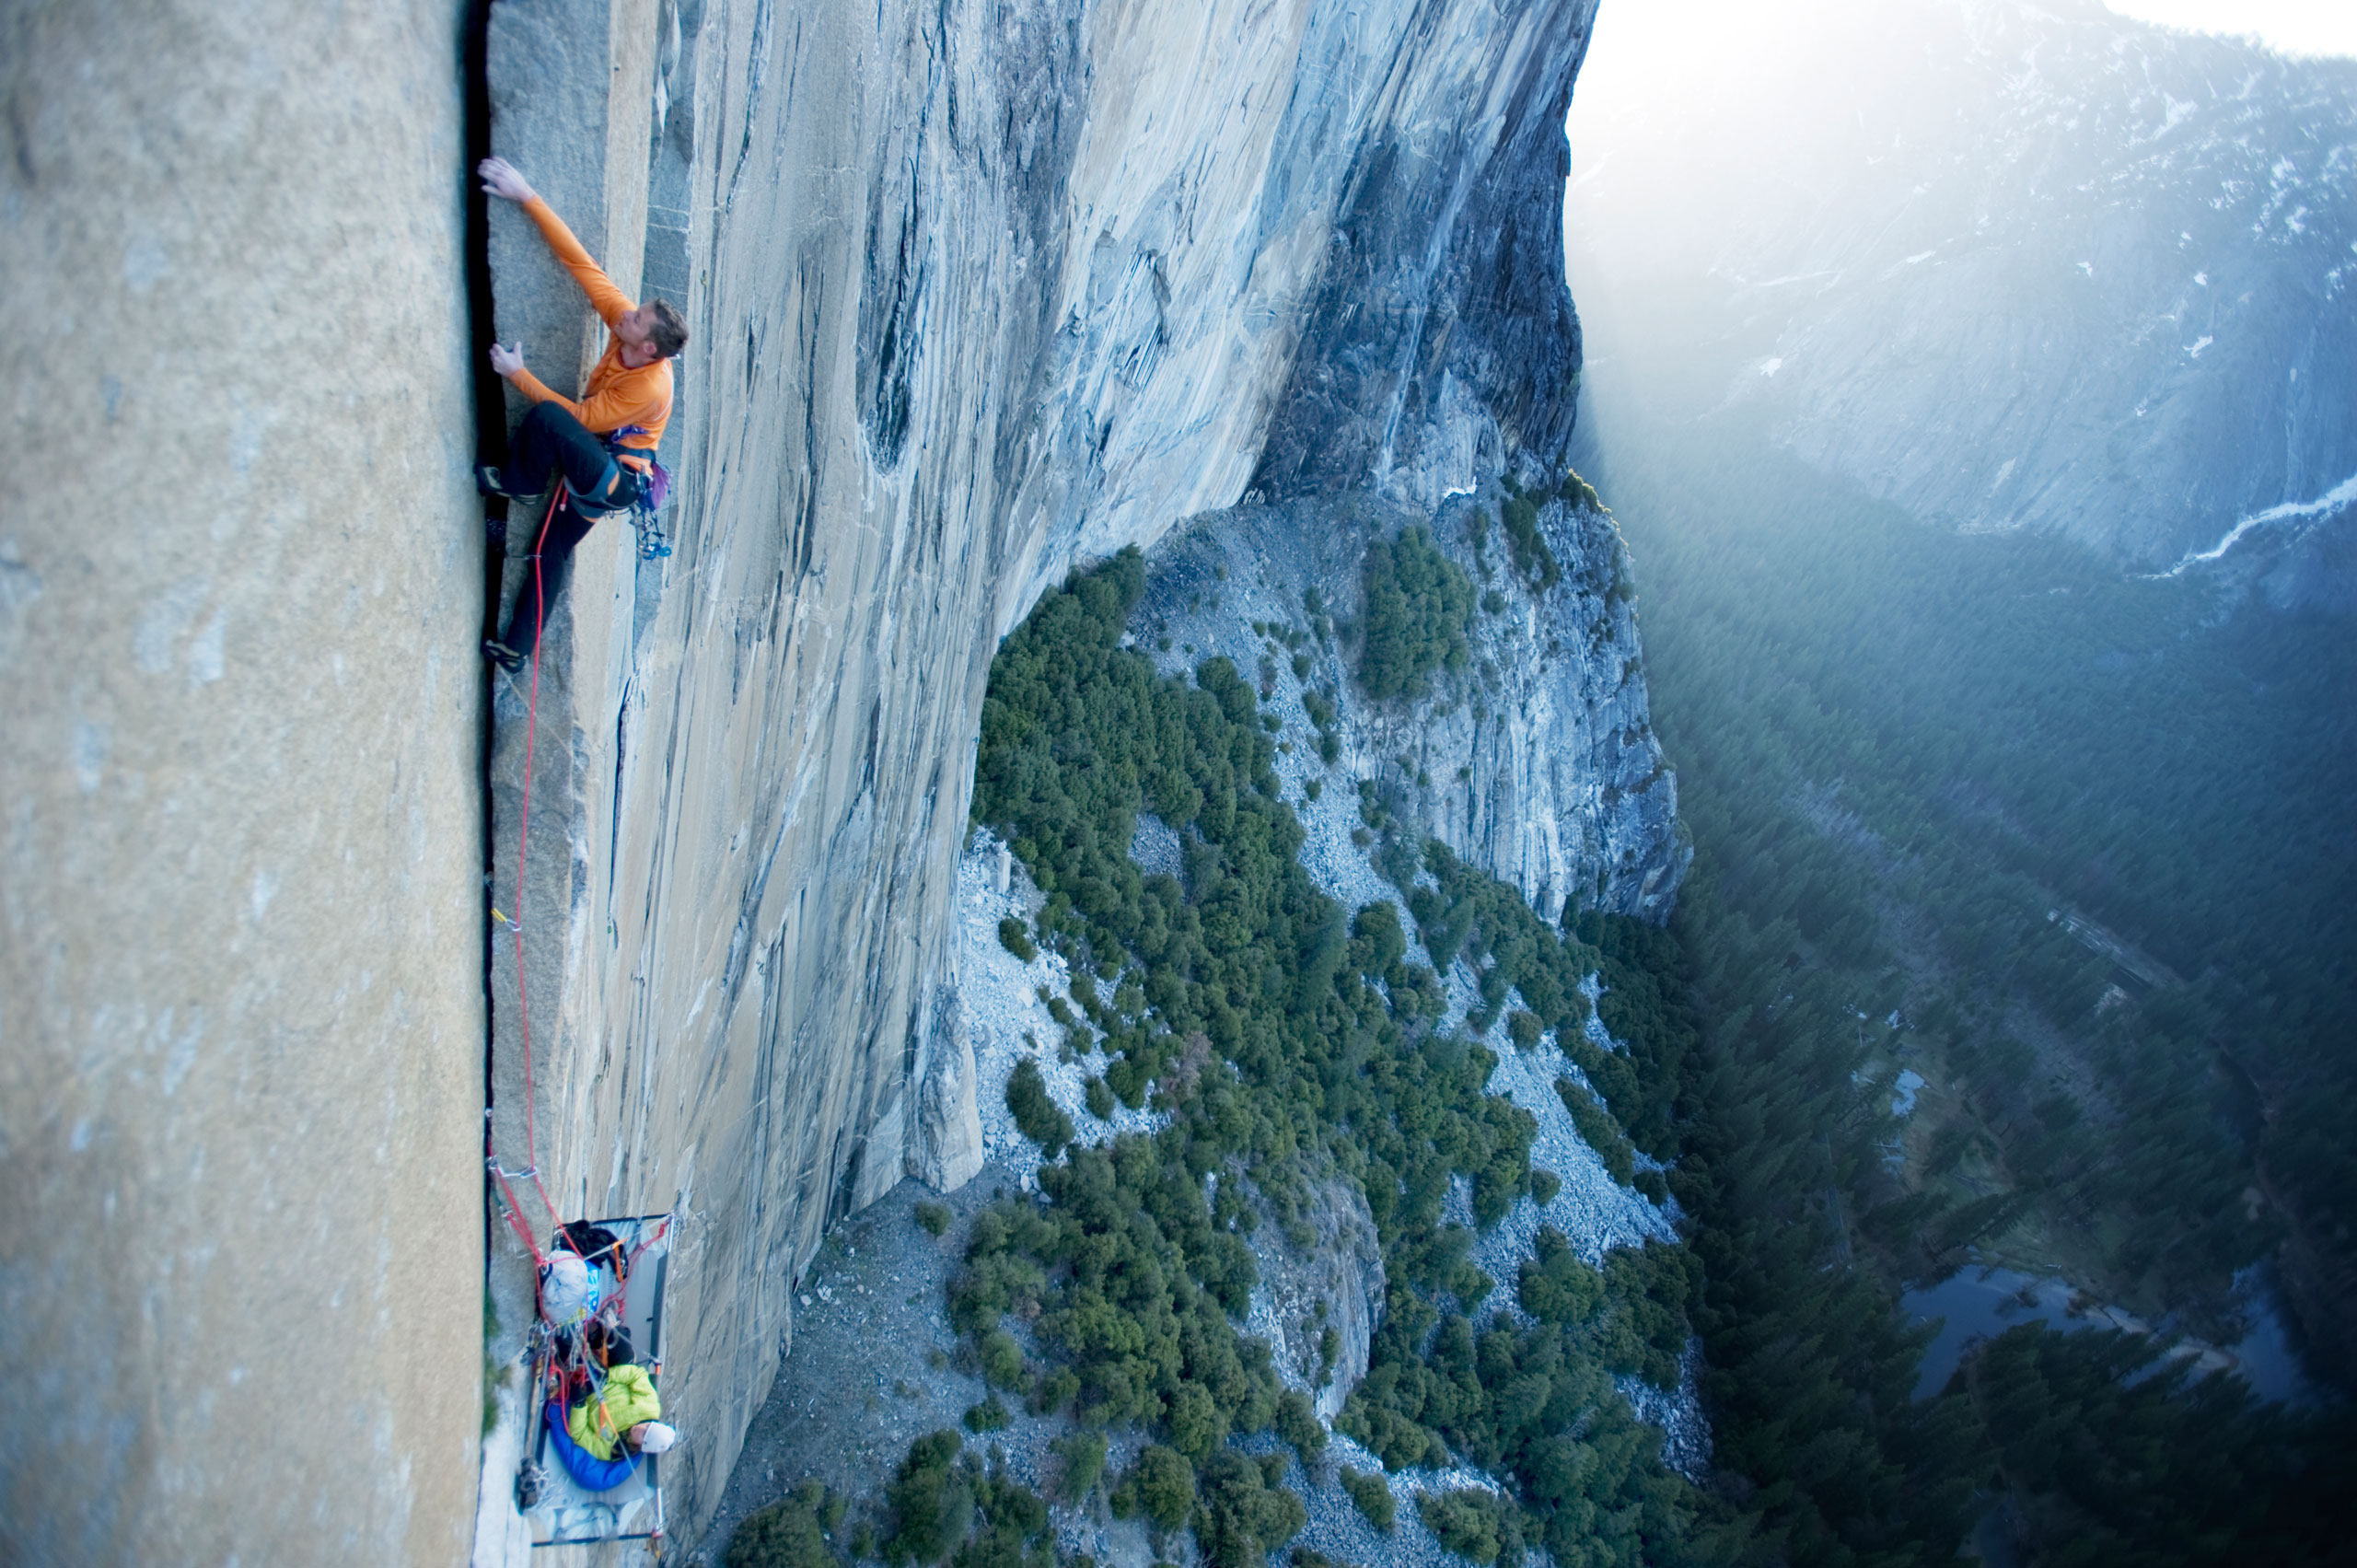 2000s: Tommy Caldwell frees more routes                                                              Tommy Caldwell has established some of the hardest climbing routes in the country. But his playground is Yosemite. He has free climbed the most routes on El Capitan than any other climber and he was the first to free climb routes including the Dihedral Wall, Magic Mushrooms and Muir Wall.